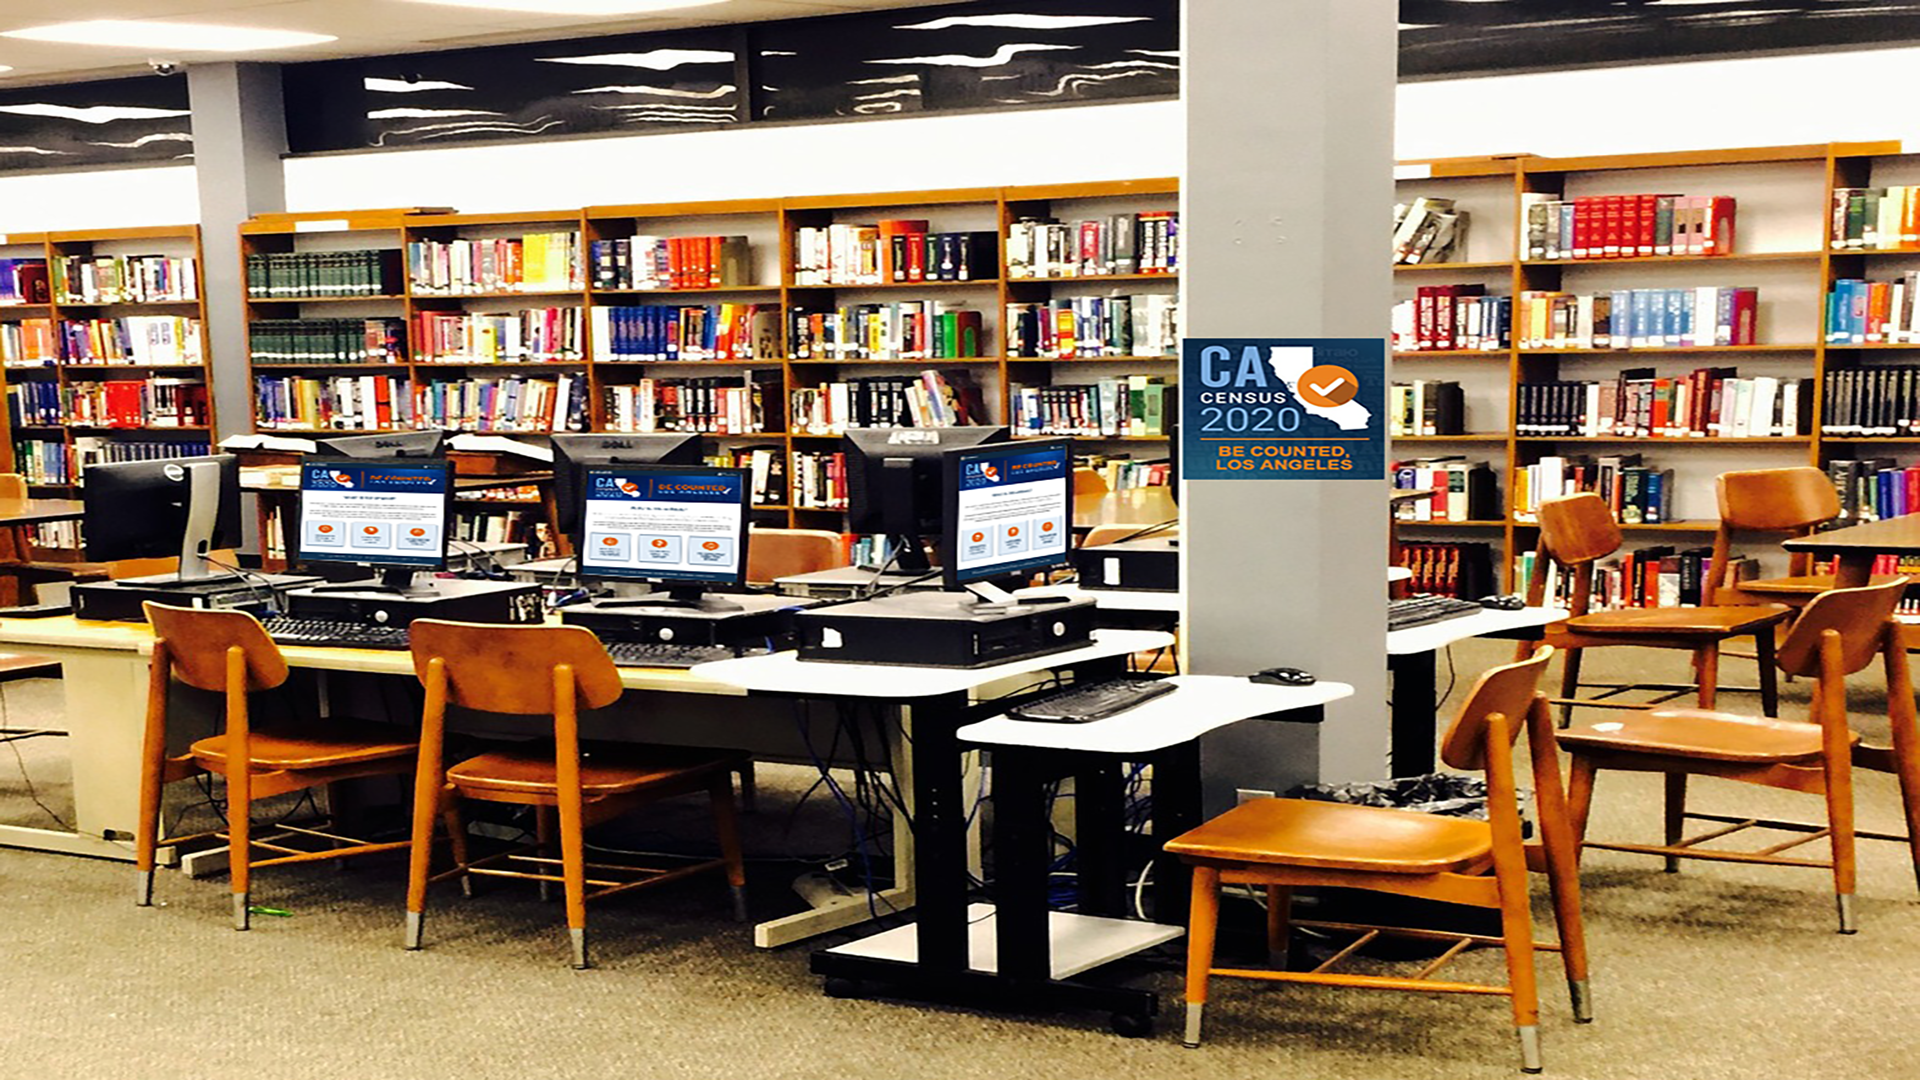 Banner of a library setting with multiple desktop computers displaying images of California Map Logo with text Census 2020 Be Counted Los Angeles.